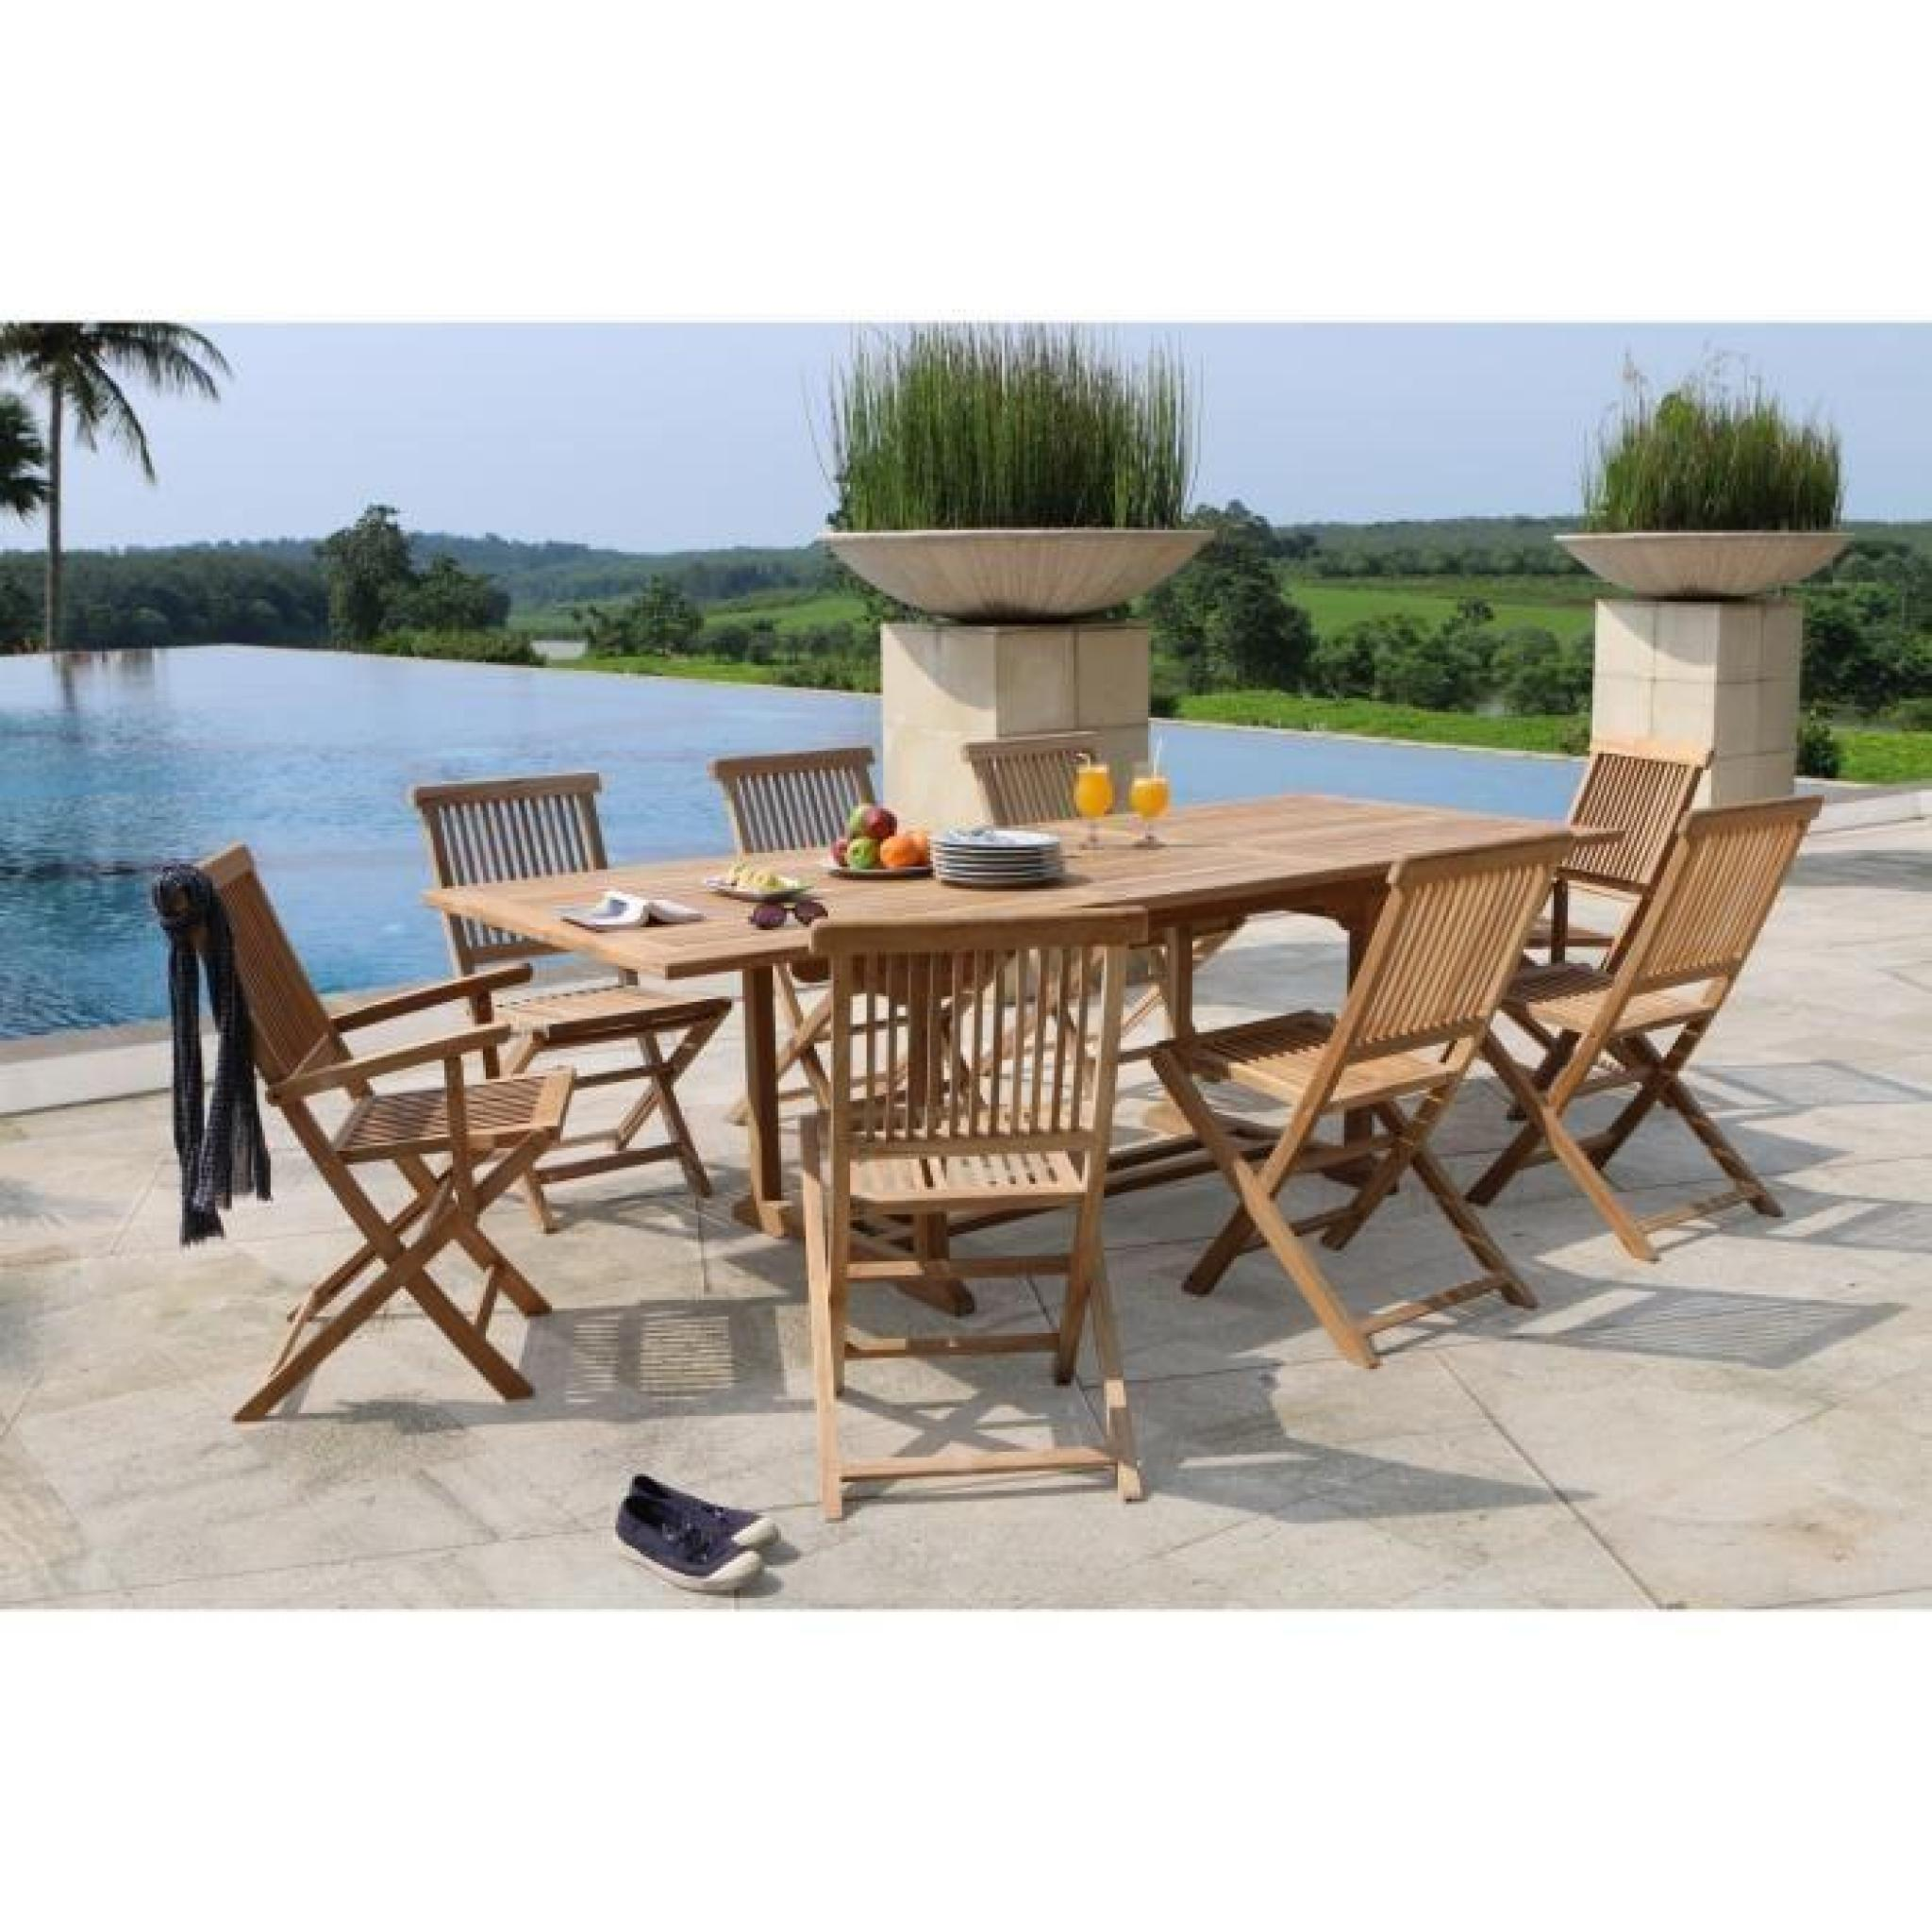 ARTIGUES Ensemble de jardin en bois teck massif 6 places - Table ...